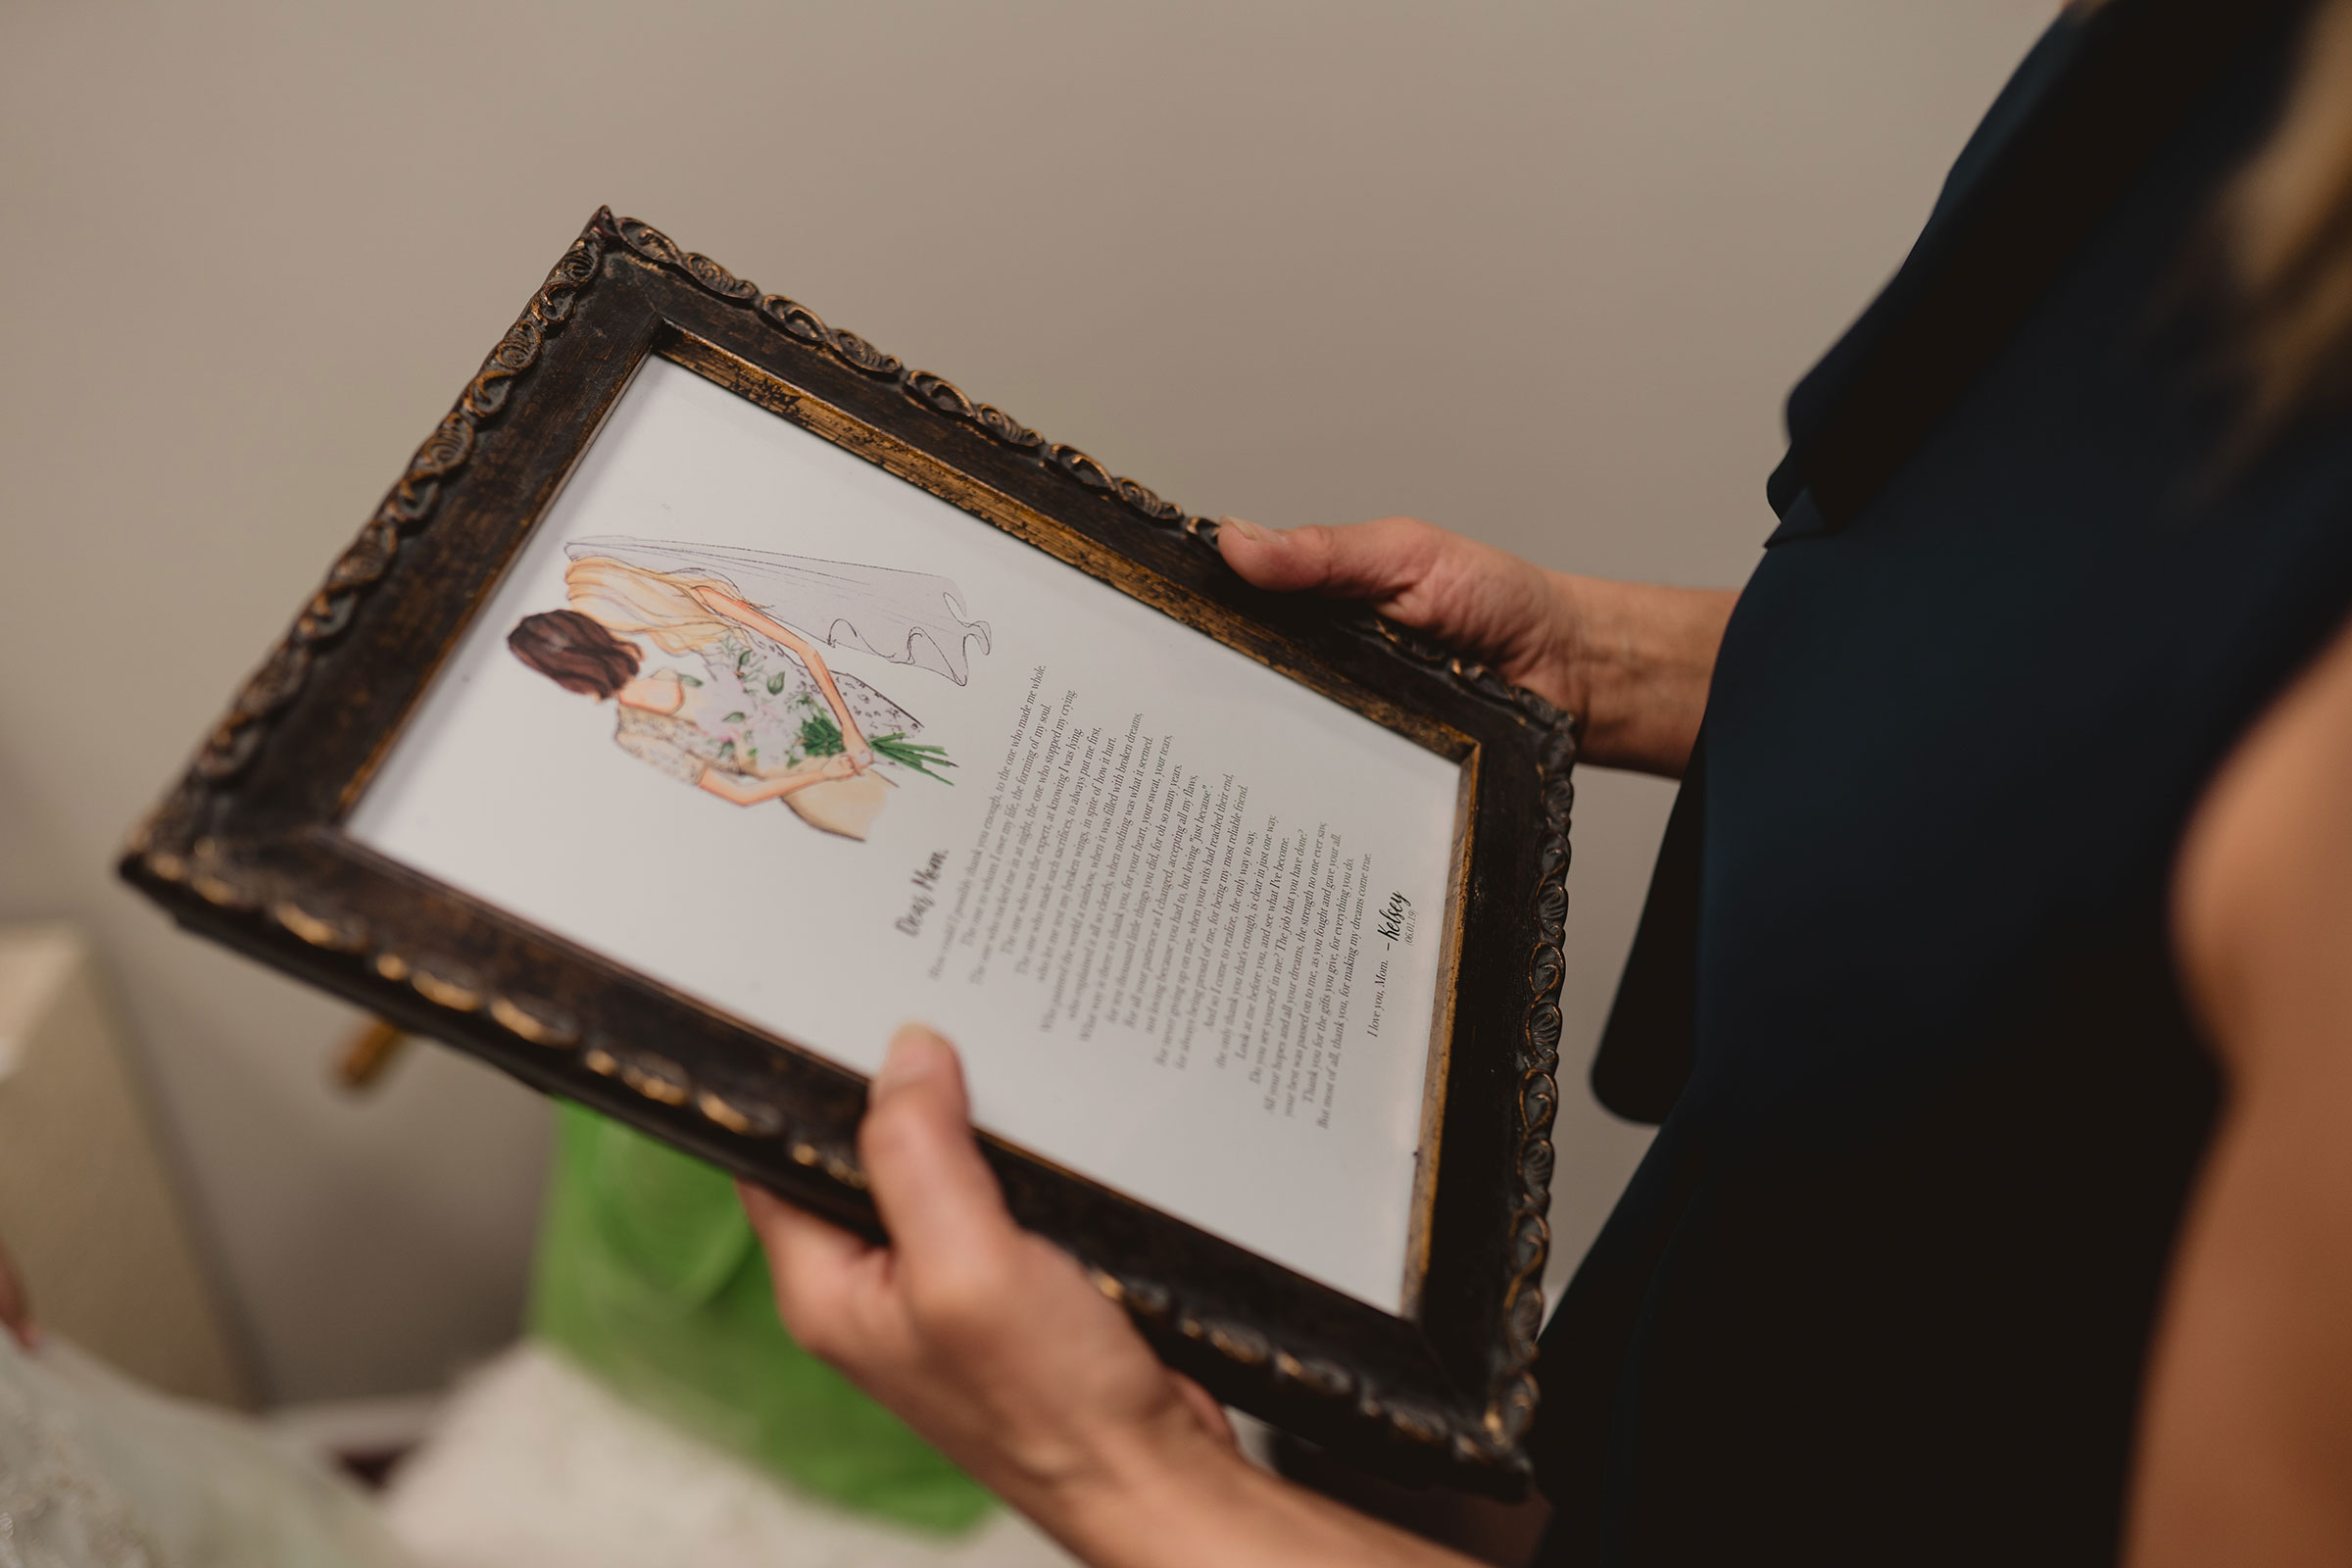 mother-of-bride-reading-gift-decades-event-center-building-desmoines-iowa-raelyn-ramey-photography..jpg